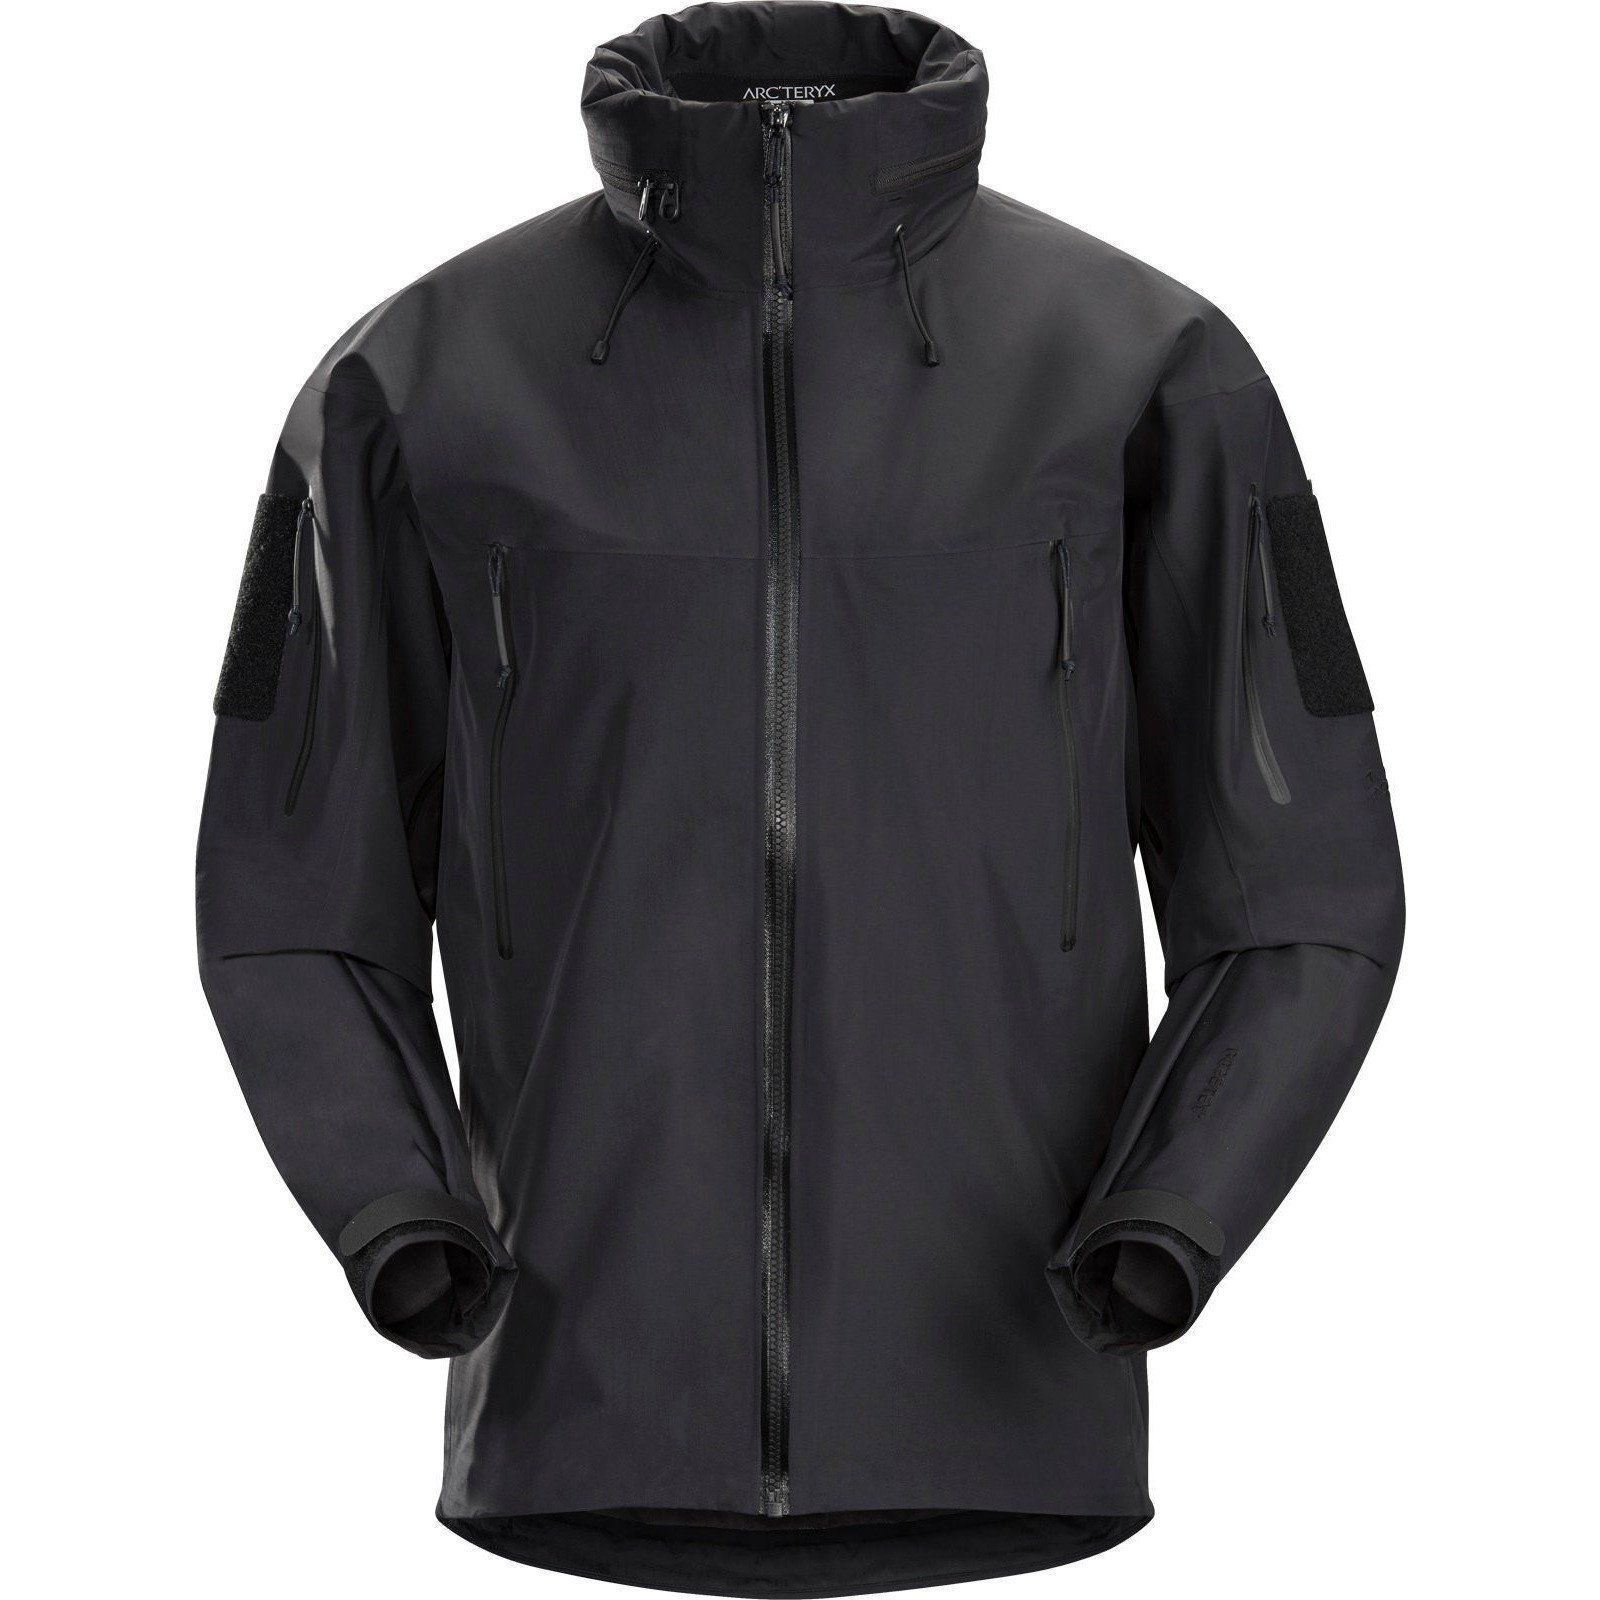 9c49878b5cb Arc teryx LEAF Alpha Jacket GEN 2 (2017 Model 18863)